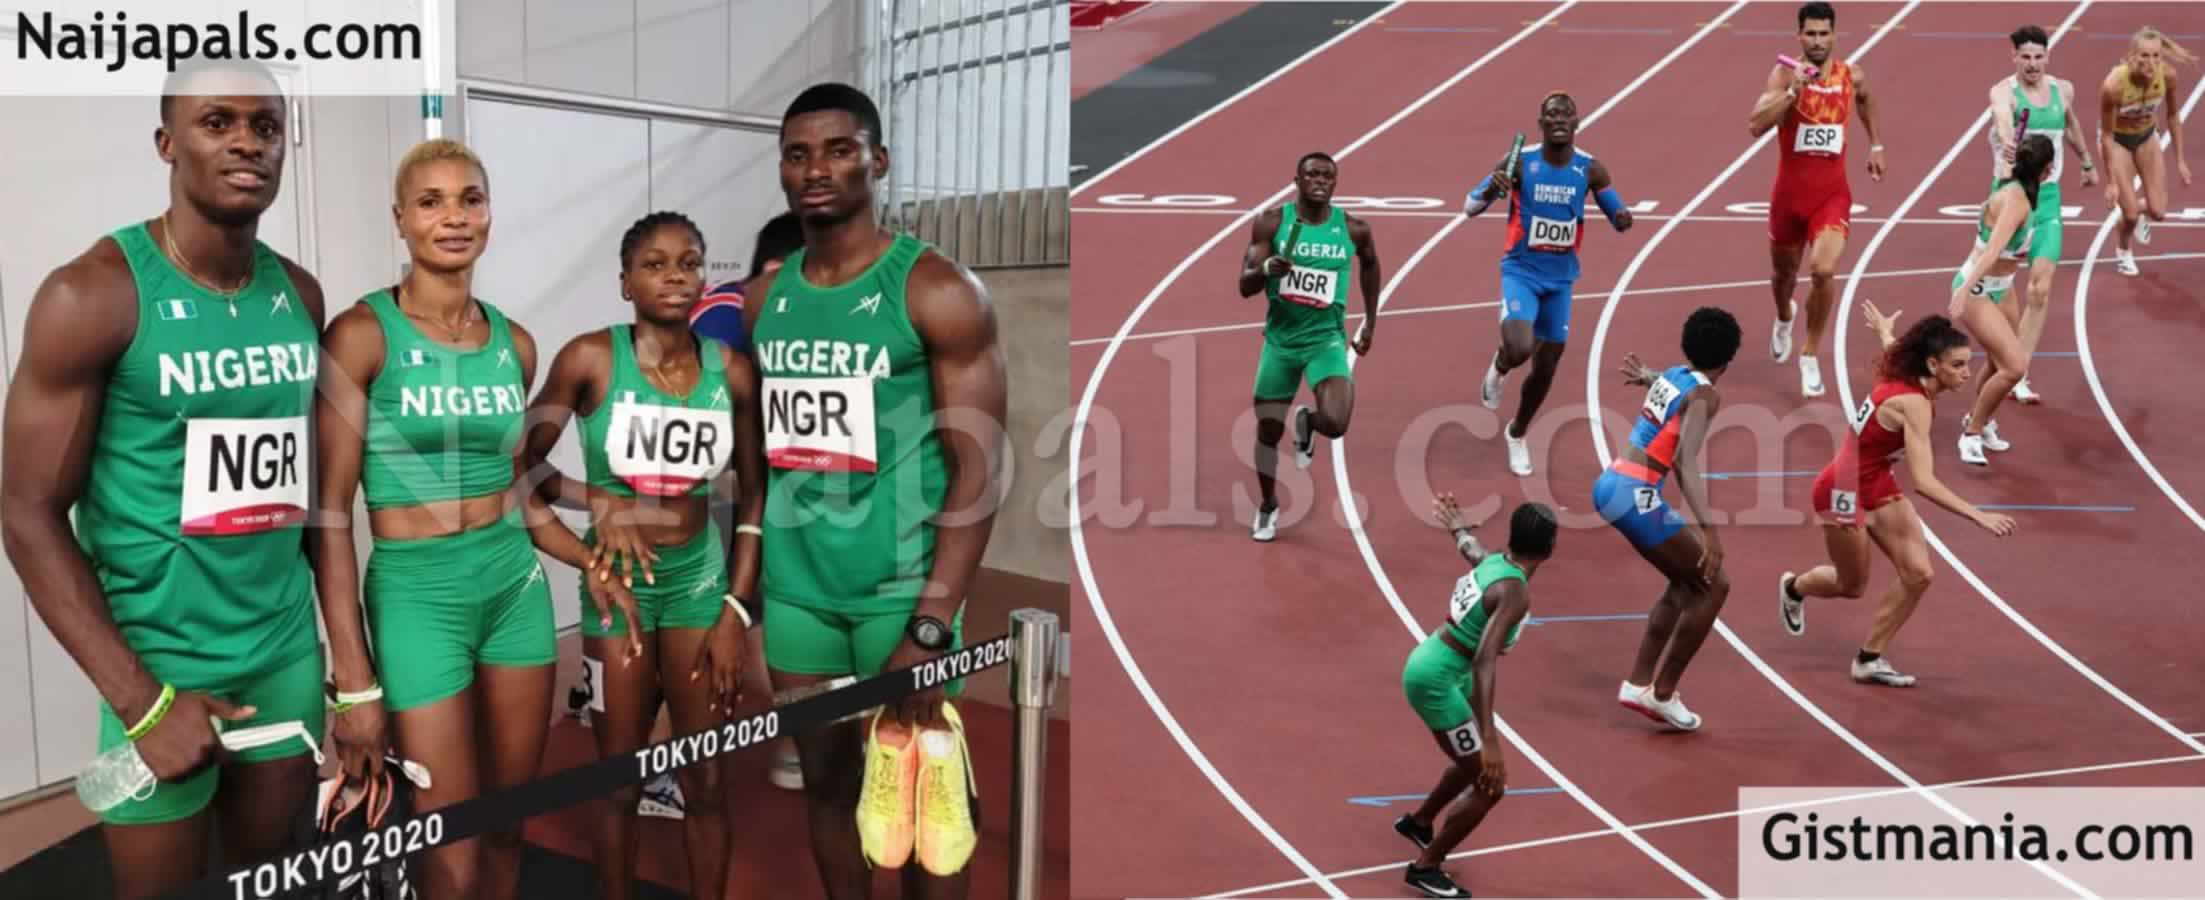 <img alt='.' class='lazyload' data-src='https://img.gistmania.com/emot/thumbs_up.gif' /> <b>Nigeria's Mixed 4x400m Quartet Leaves Tokyo With Heads High After Setting A New African Record</b>